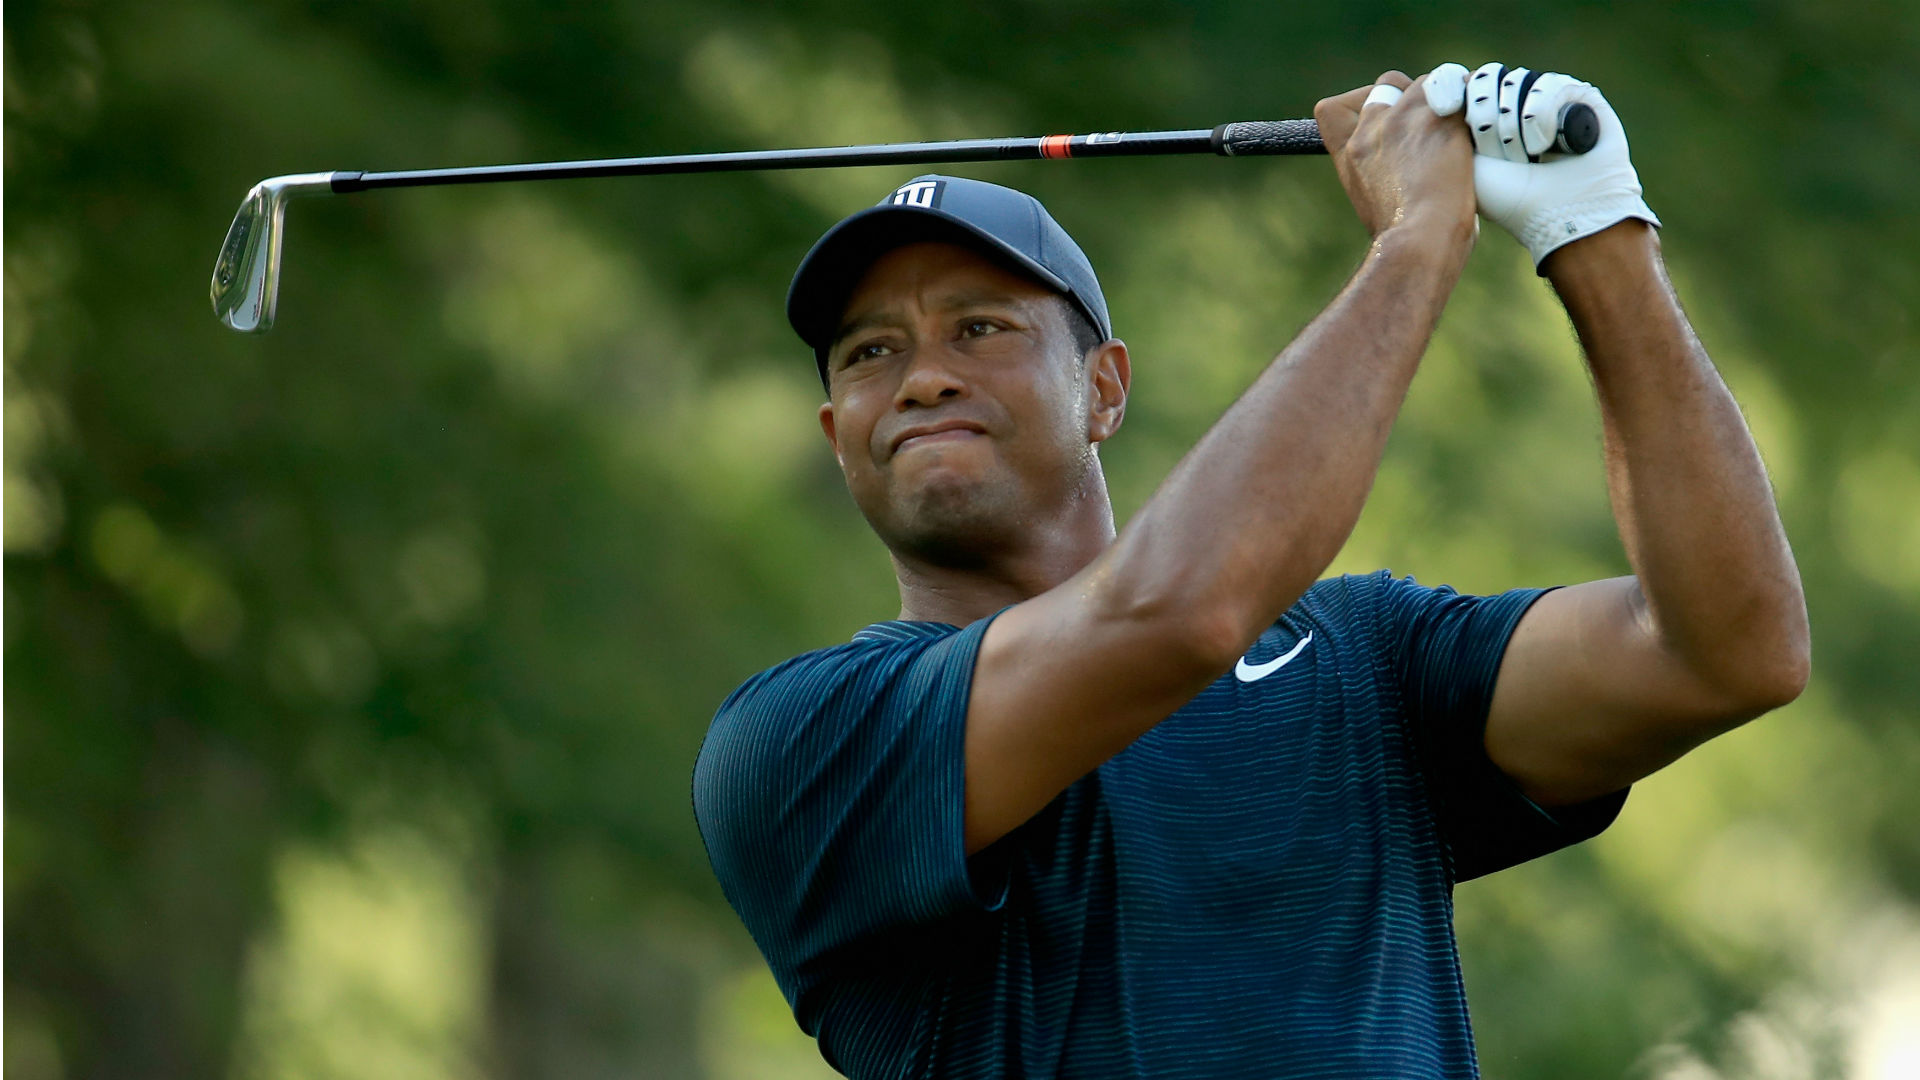 PGA Championship: Tiger Woods flirting with cut line